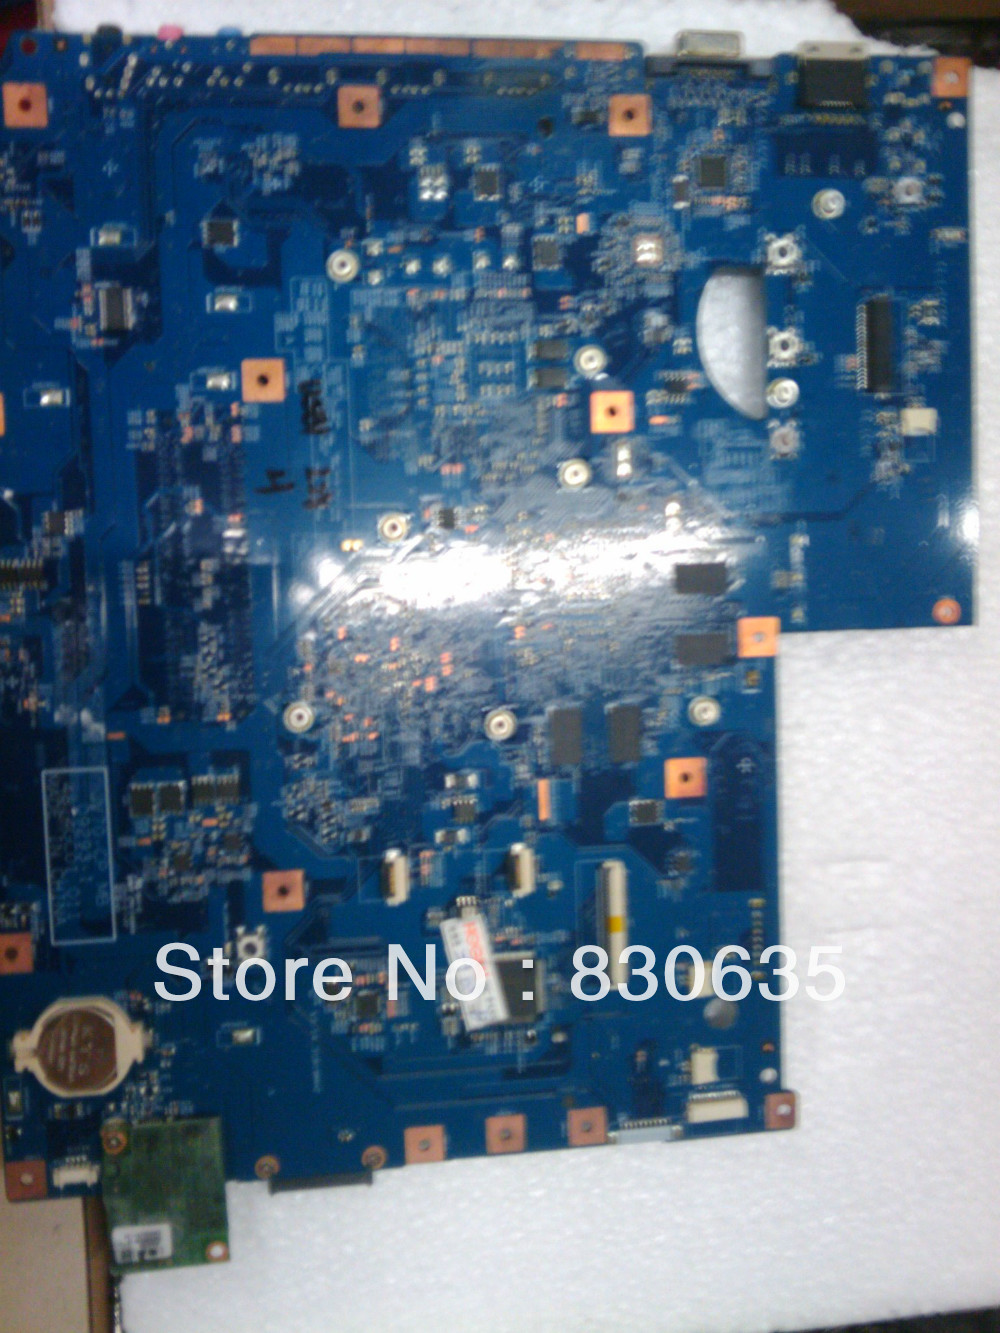 AS7740G 7740G 7740 connect with printer motherboard tested by system lap connect board mbx 185 connect with printer motherboard tested by system lap connect board